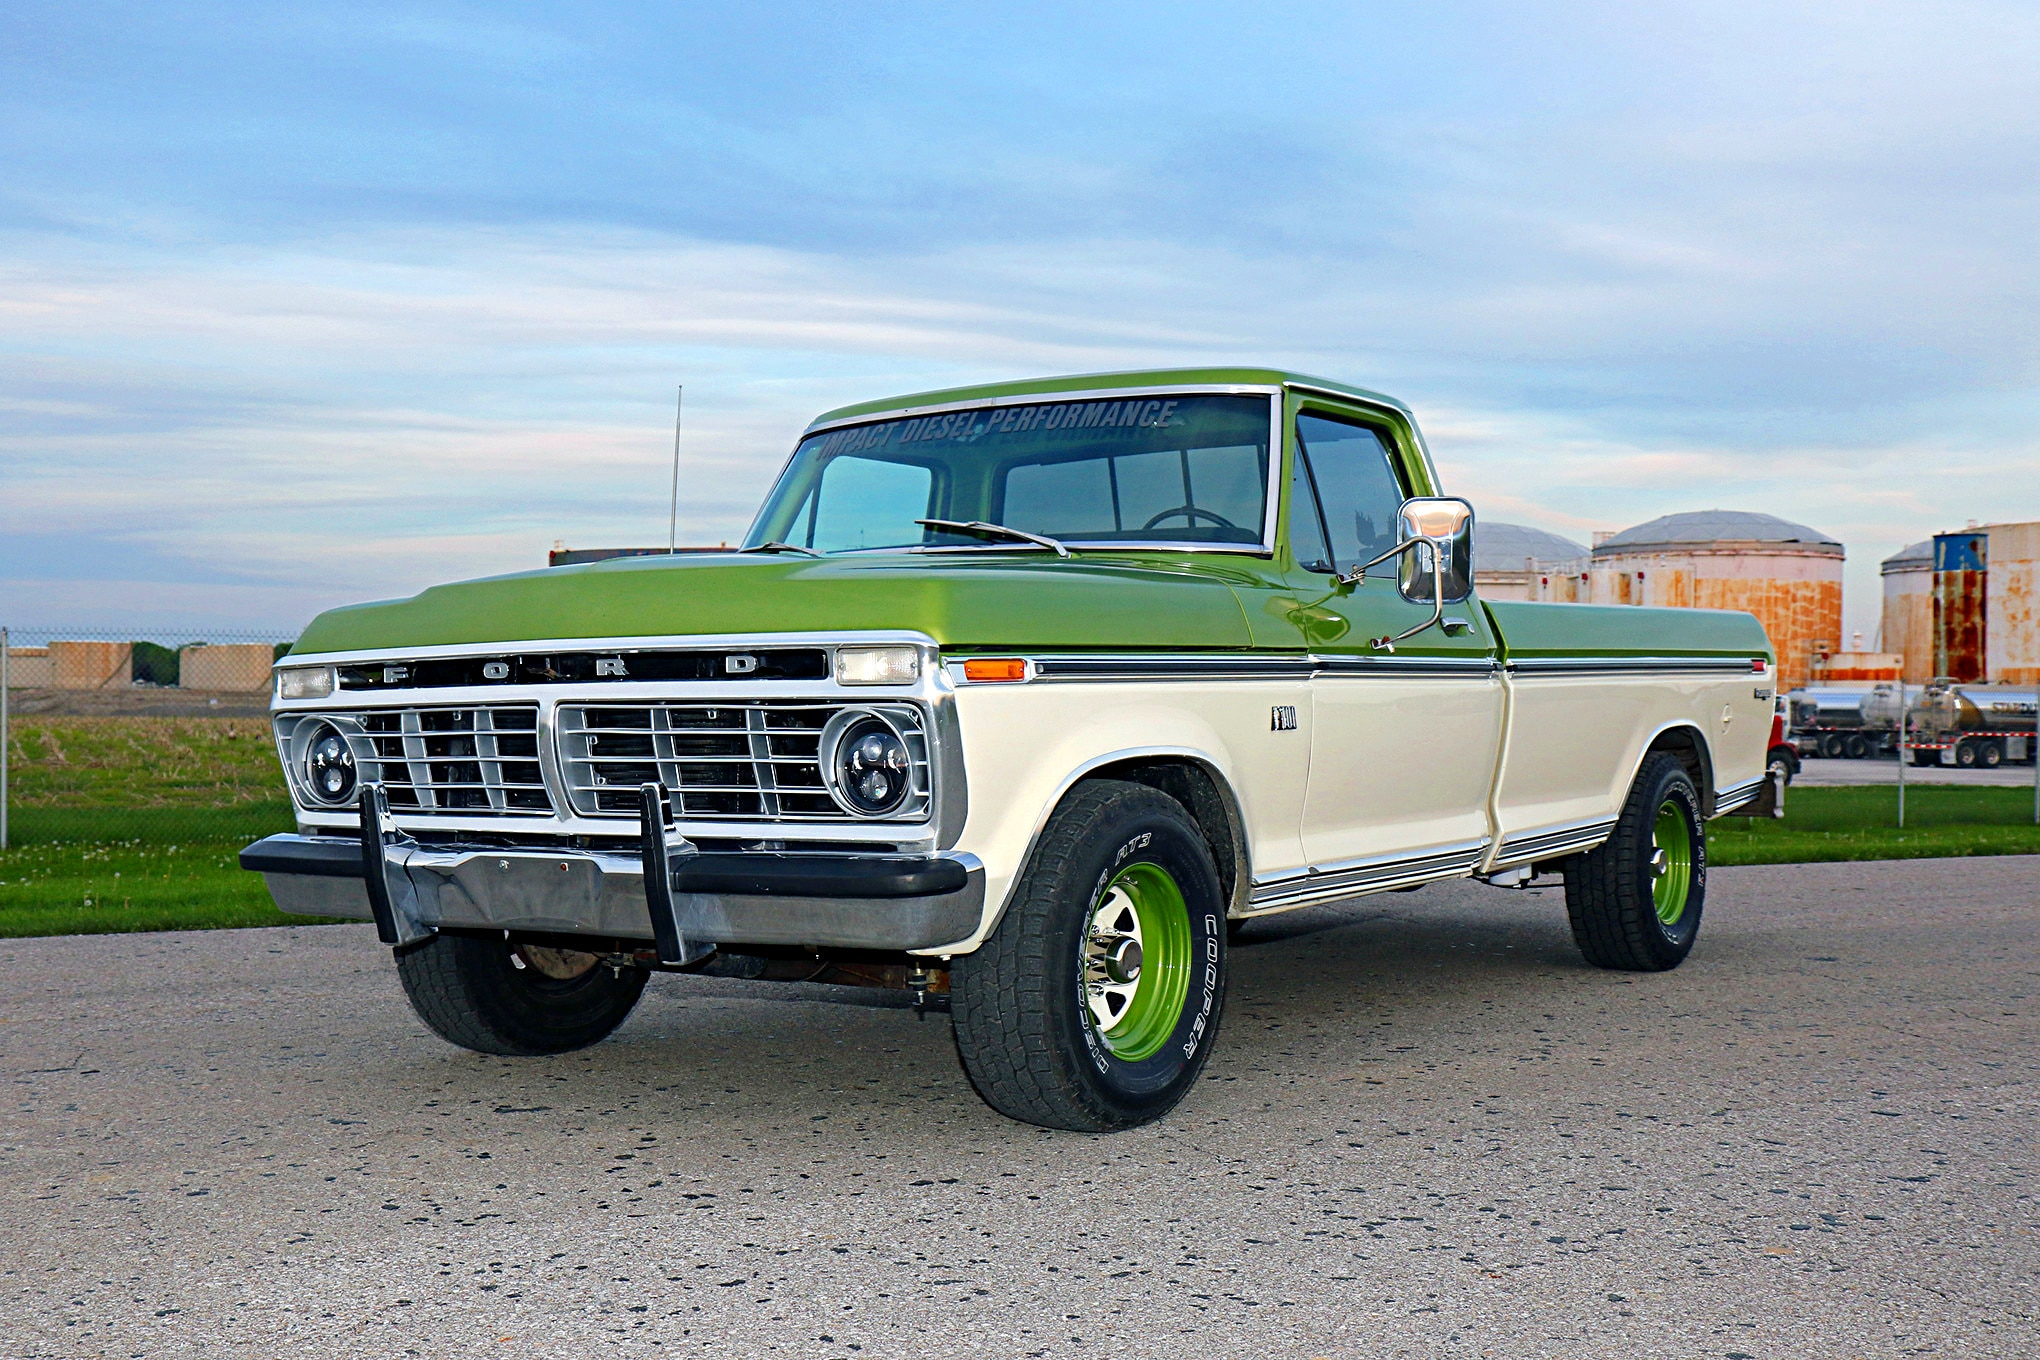 Northern Ranger: 1974 Ford F100